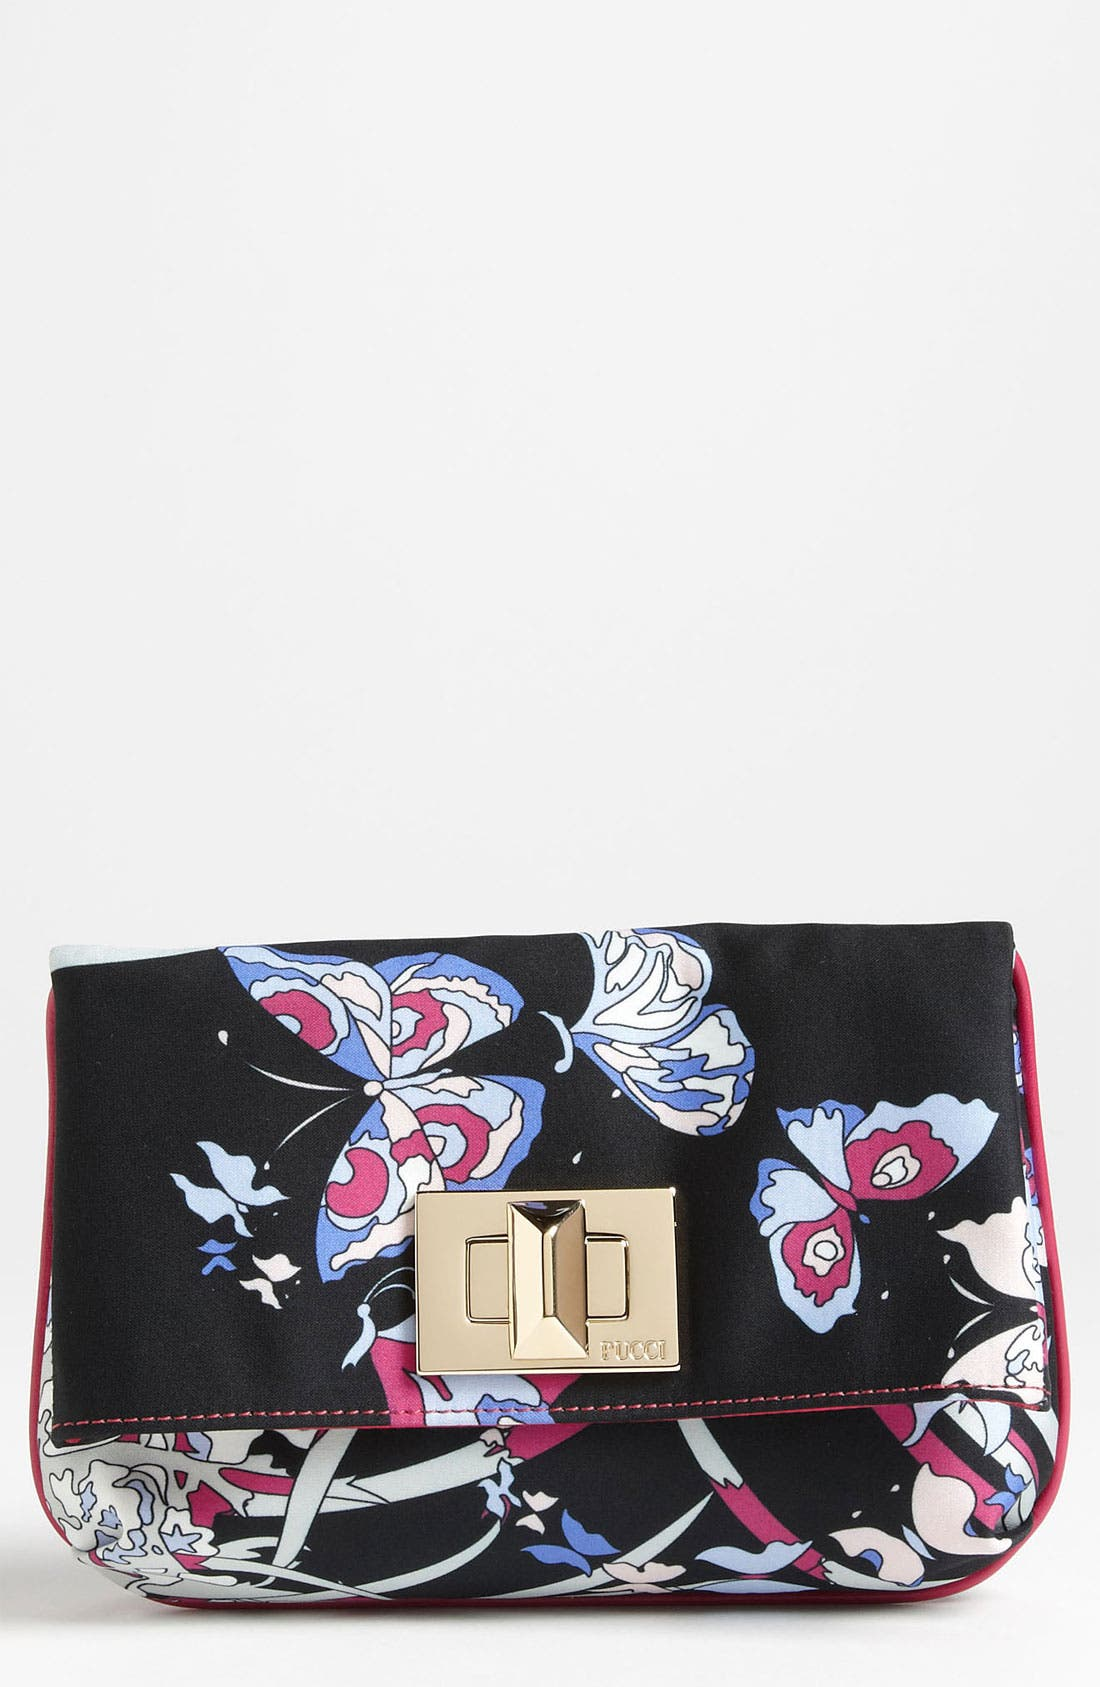 Main Image - Emilio Pucci 'Butterfly' Fold Over Clutch